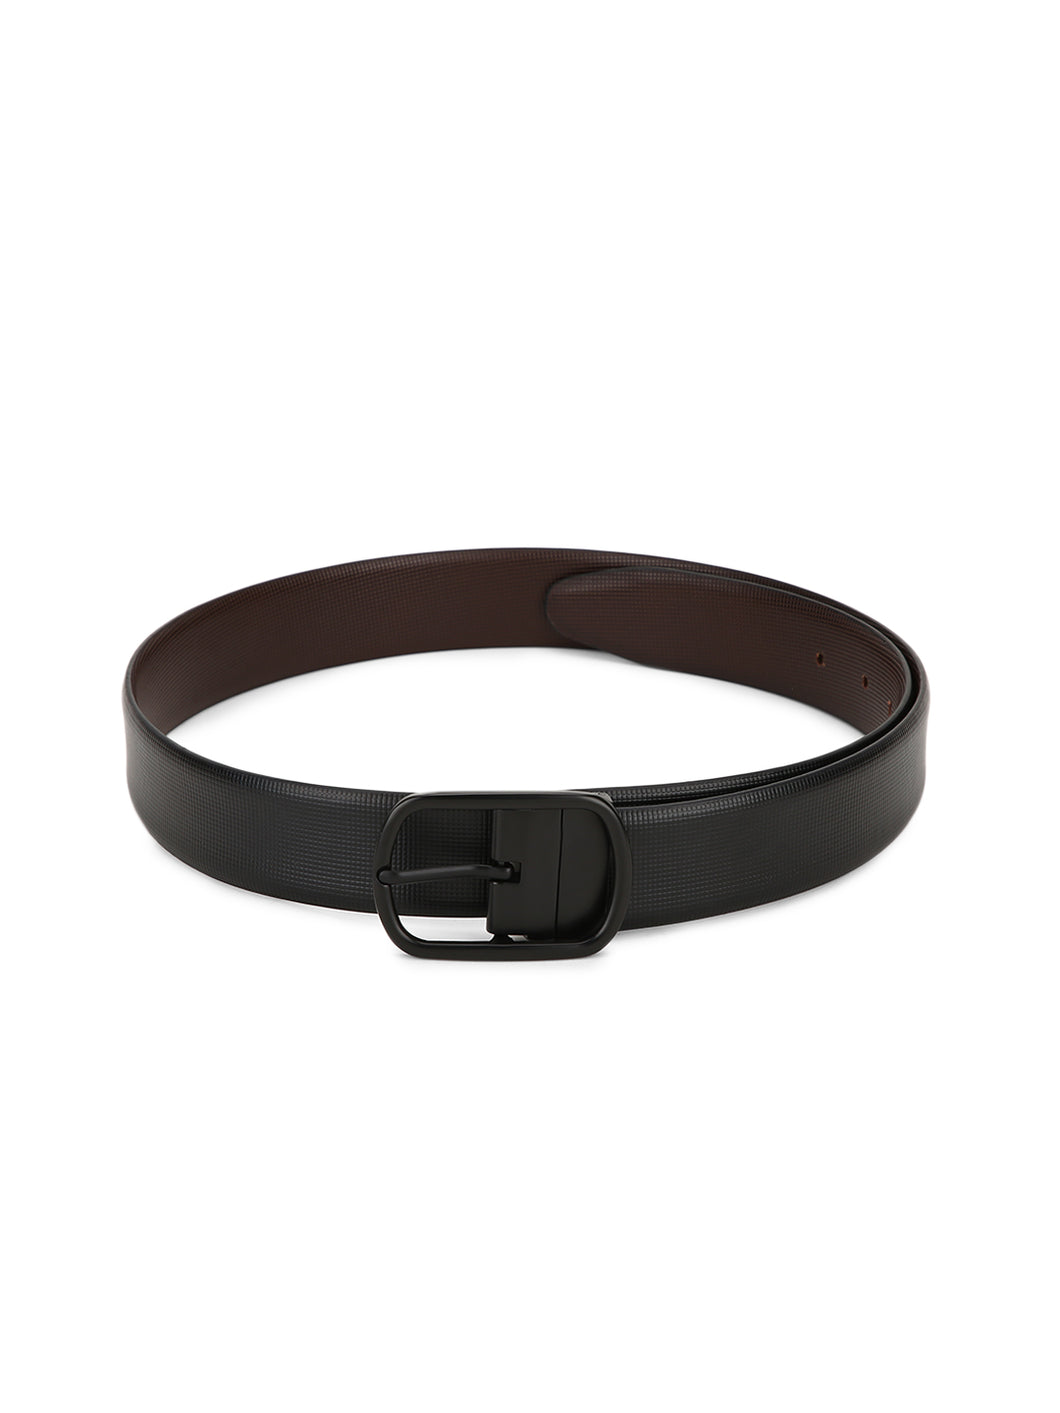 GENUINE LEATHER BLACK BELT